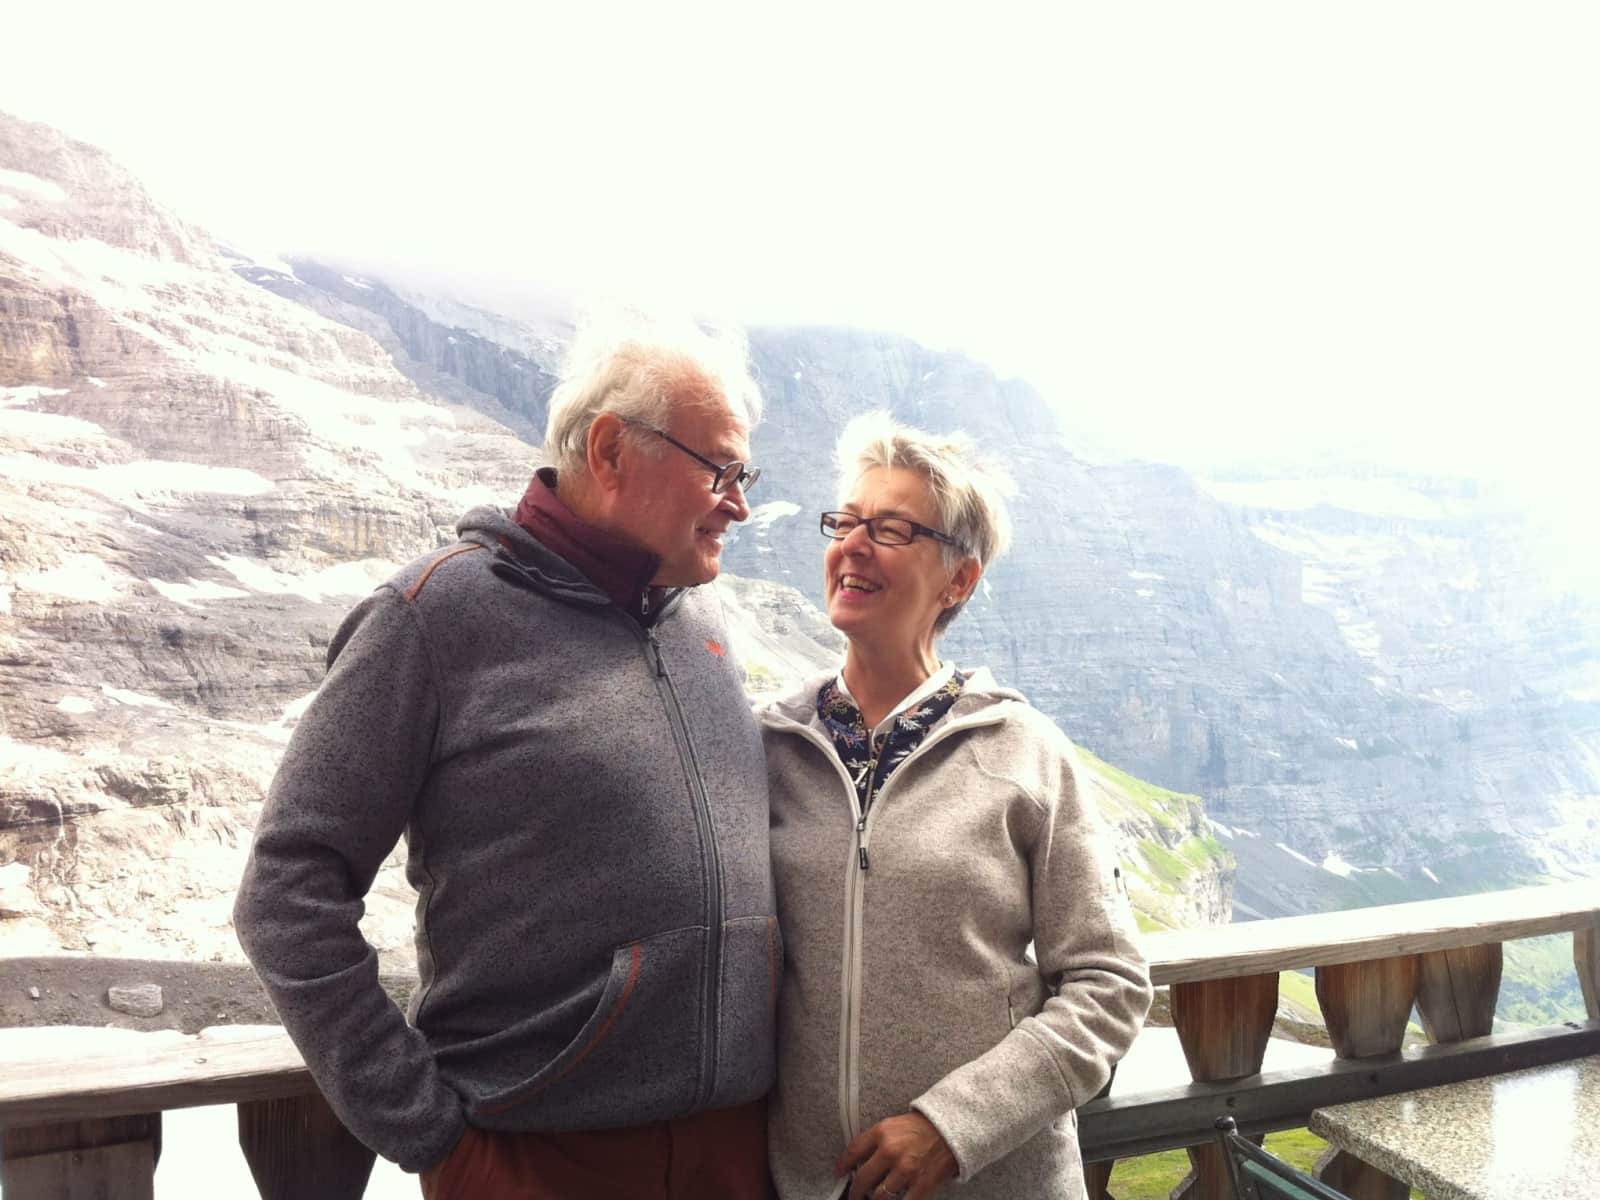 Katharina & Werner from Thun, Switzerland